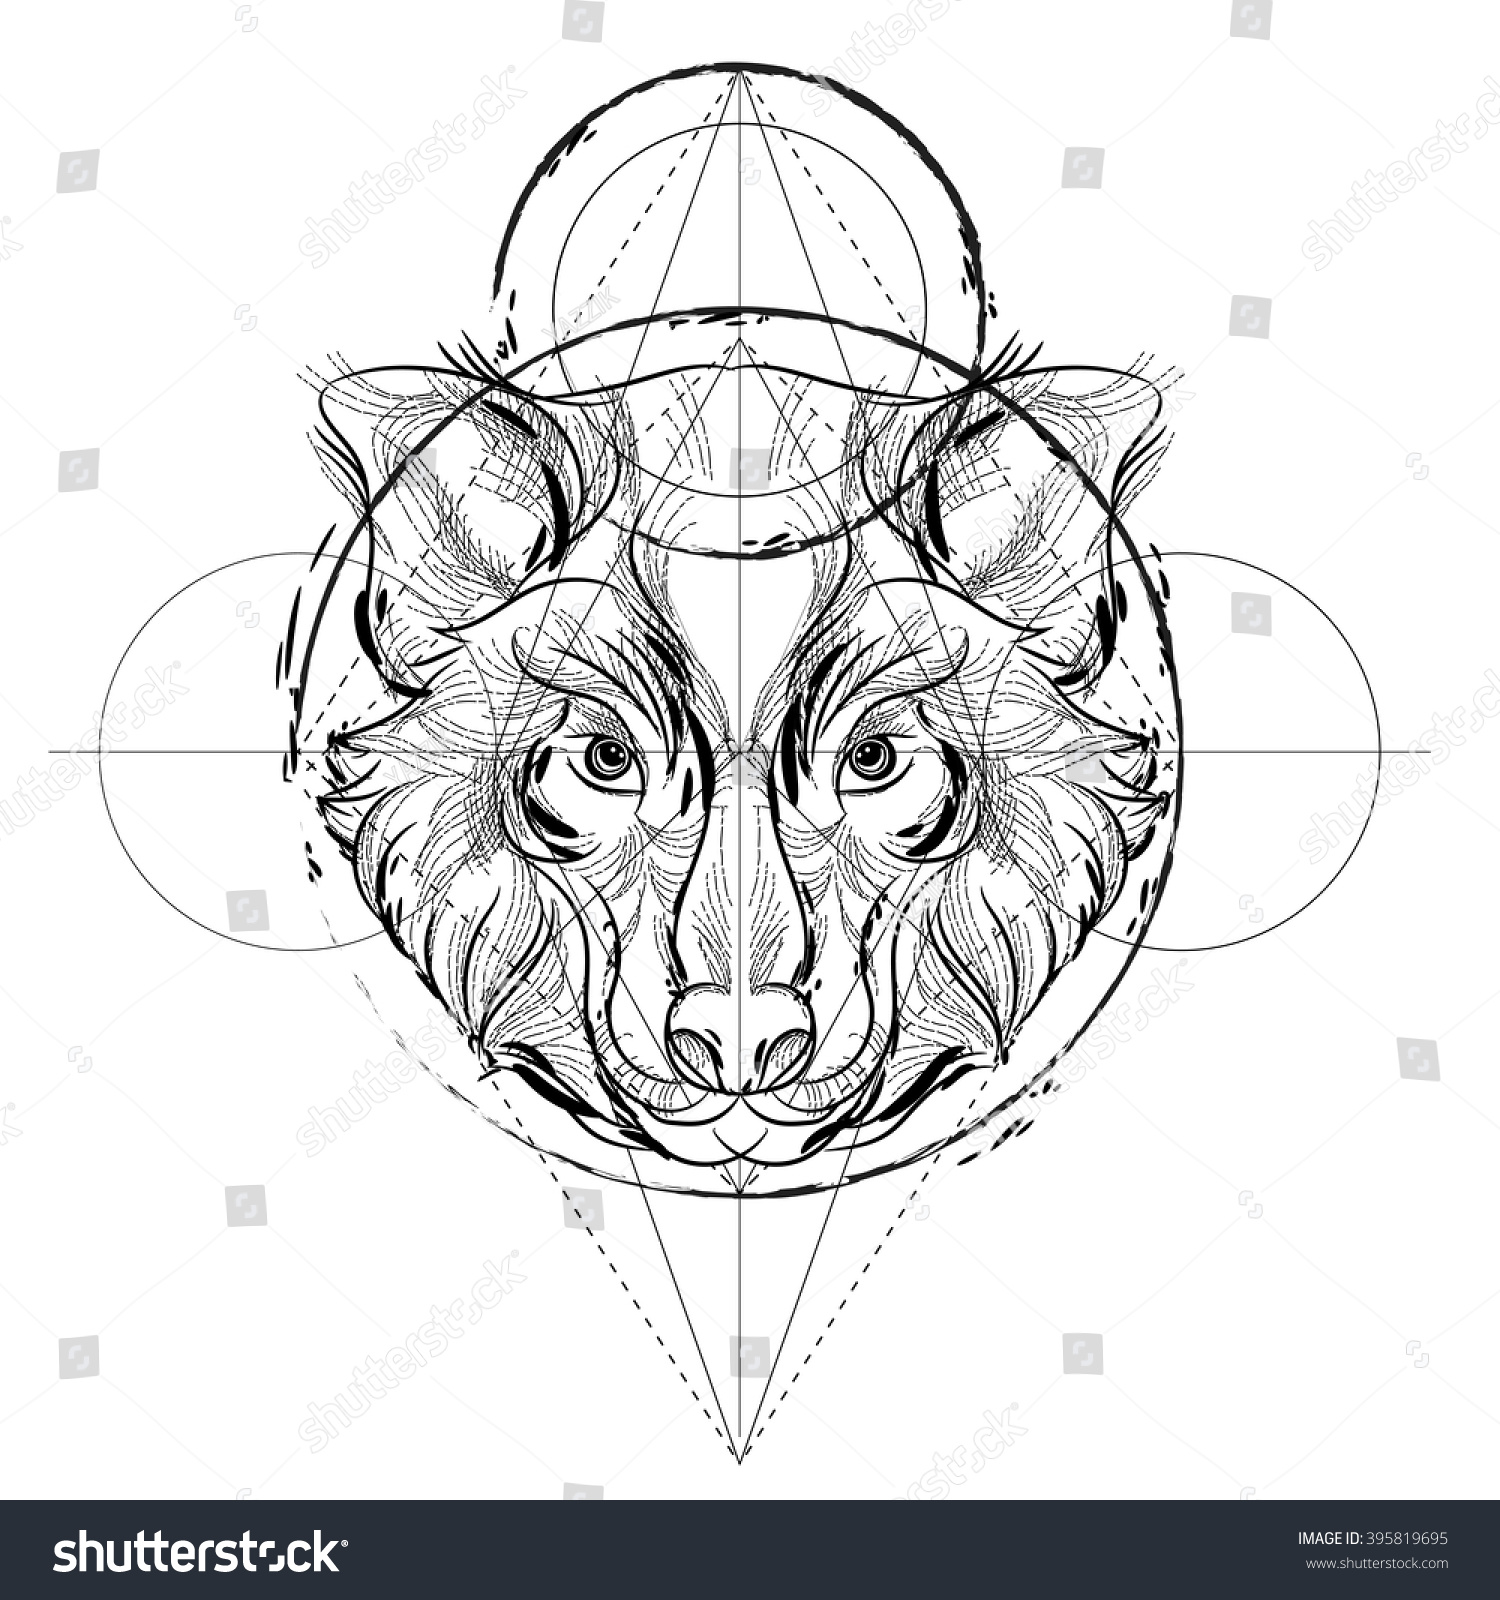 Tiger head triangular icon geometric trendy stock vector image - Animal Head Icon Geometric Trendy Line Design Vector Illustration Ready For Tattoo Or Coloring